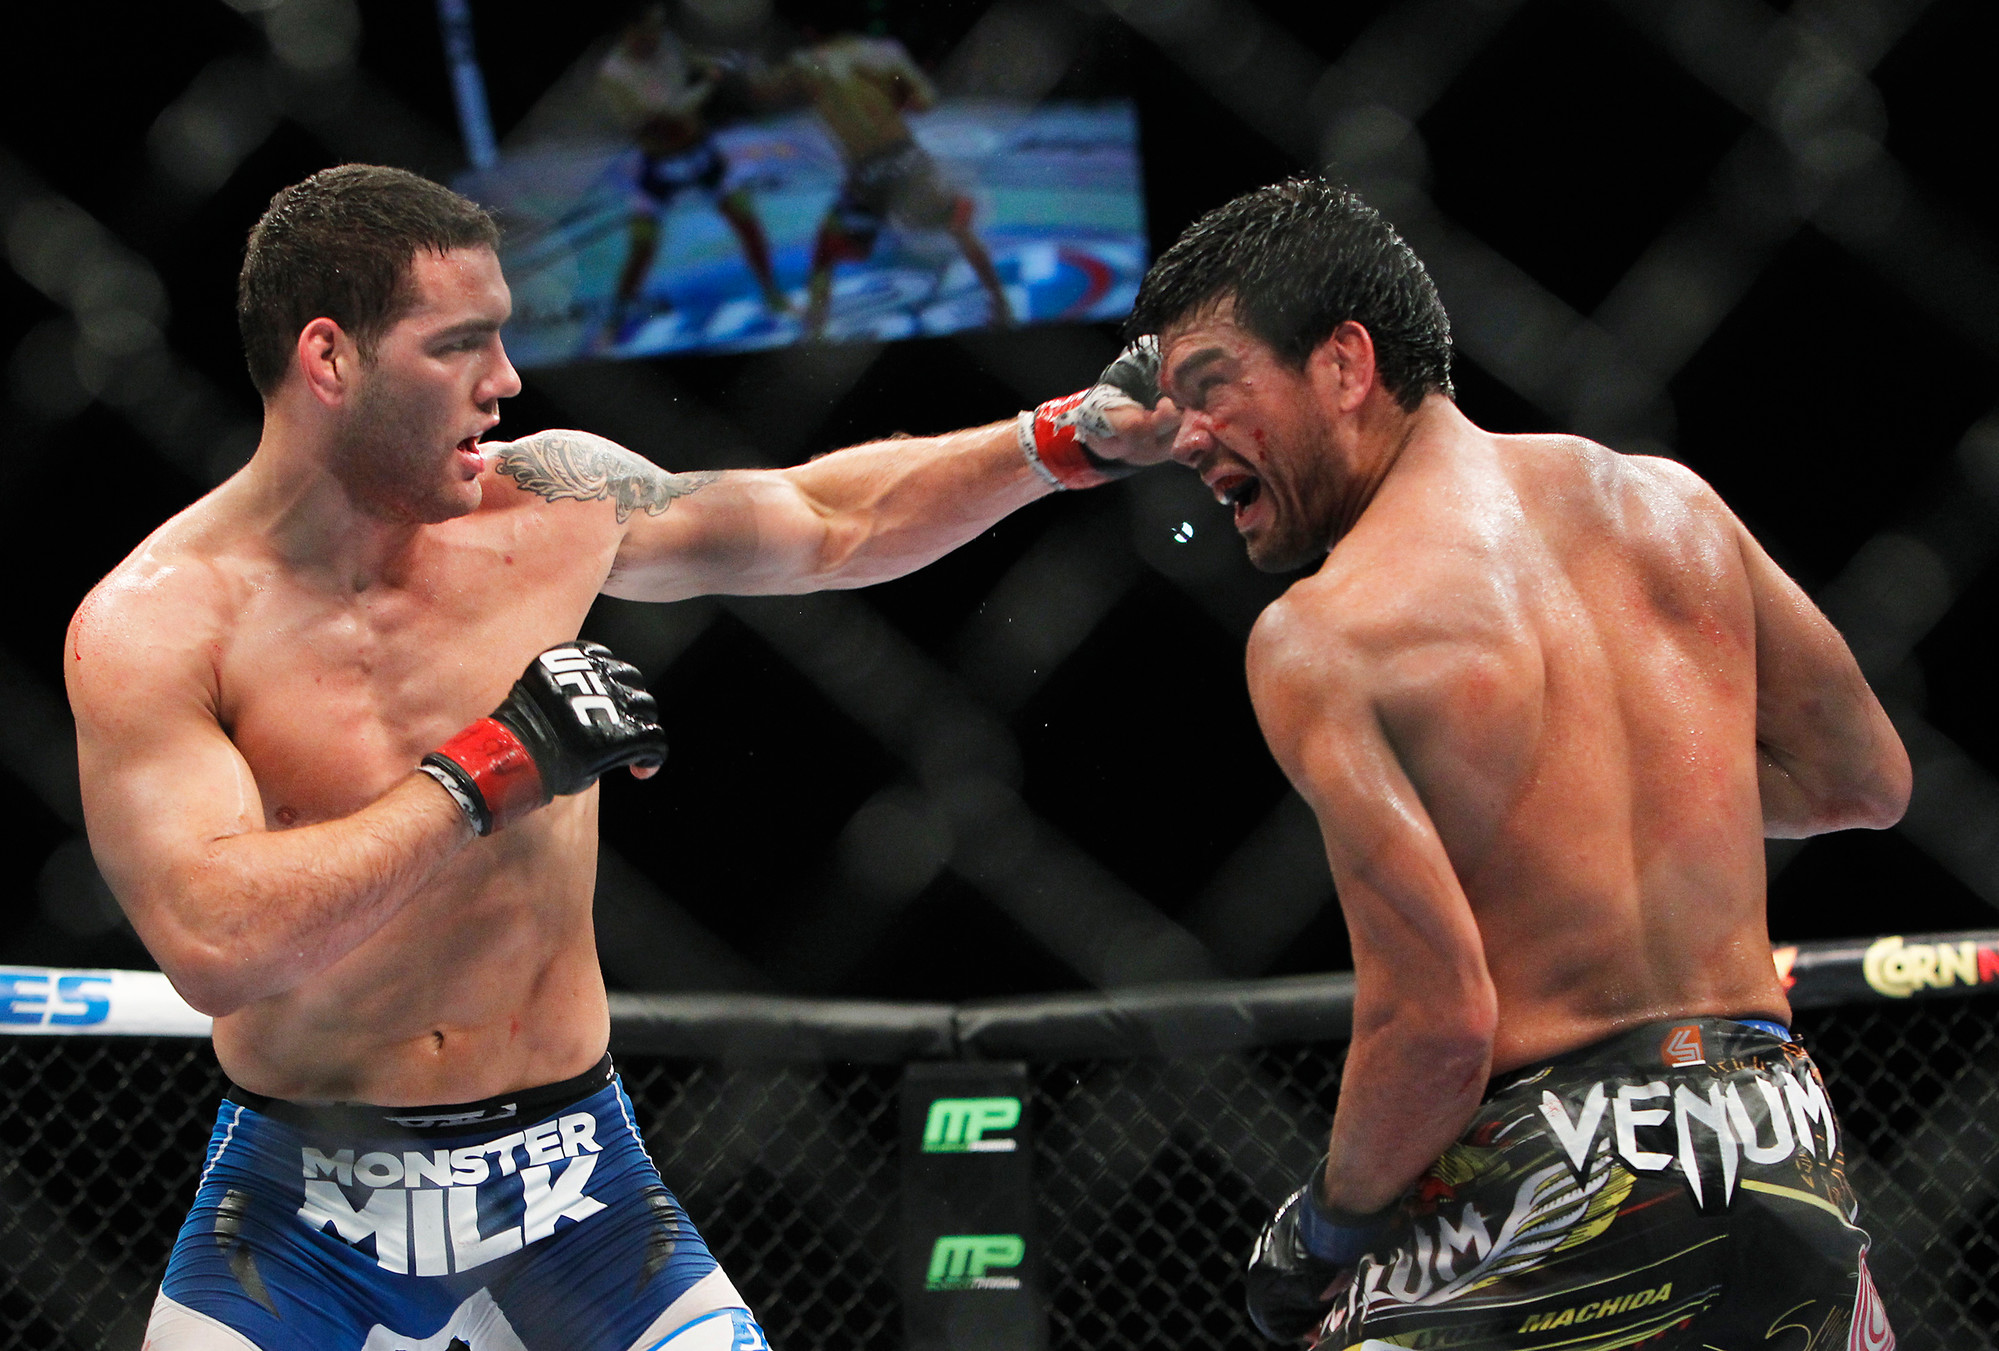 Chris Weidman, left, defeated Lyoto Machida at the Mandalay Bay Events Center in Las Vegas last Saturday to retain the UFC Middleweight title.